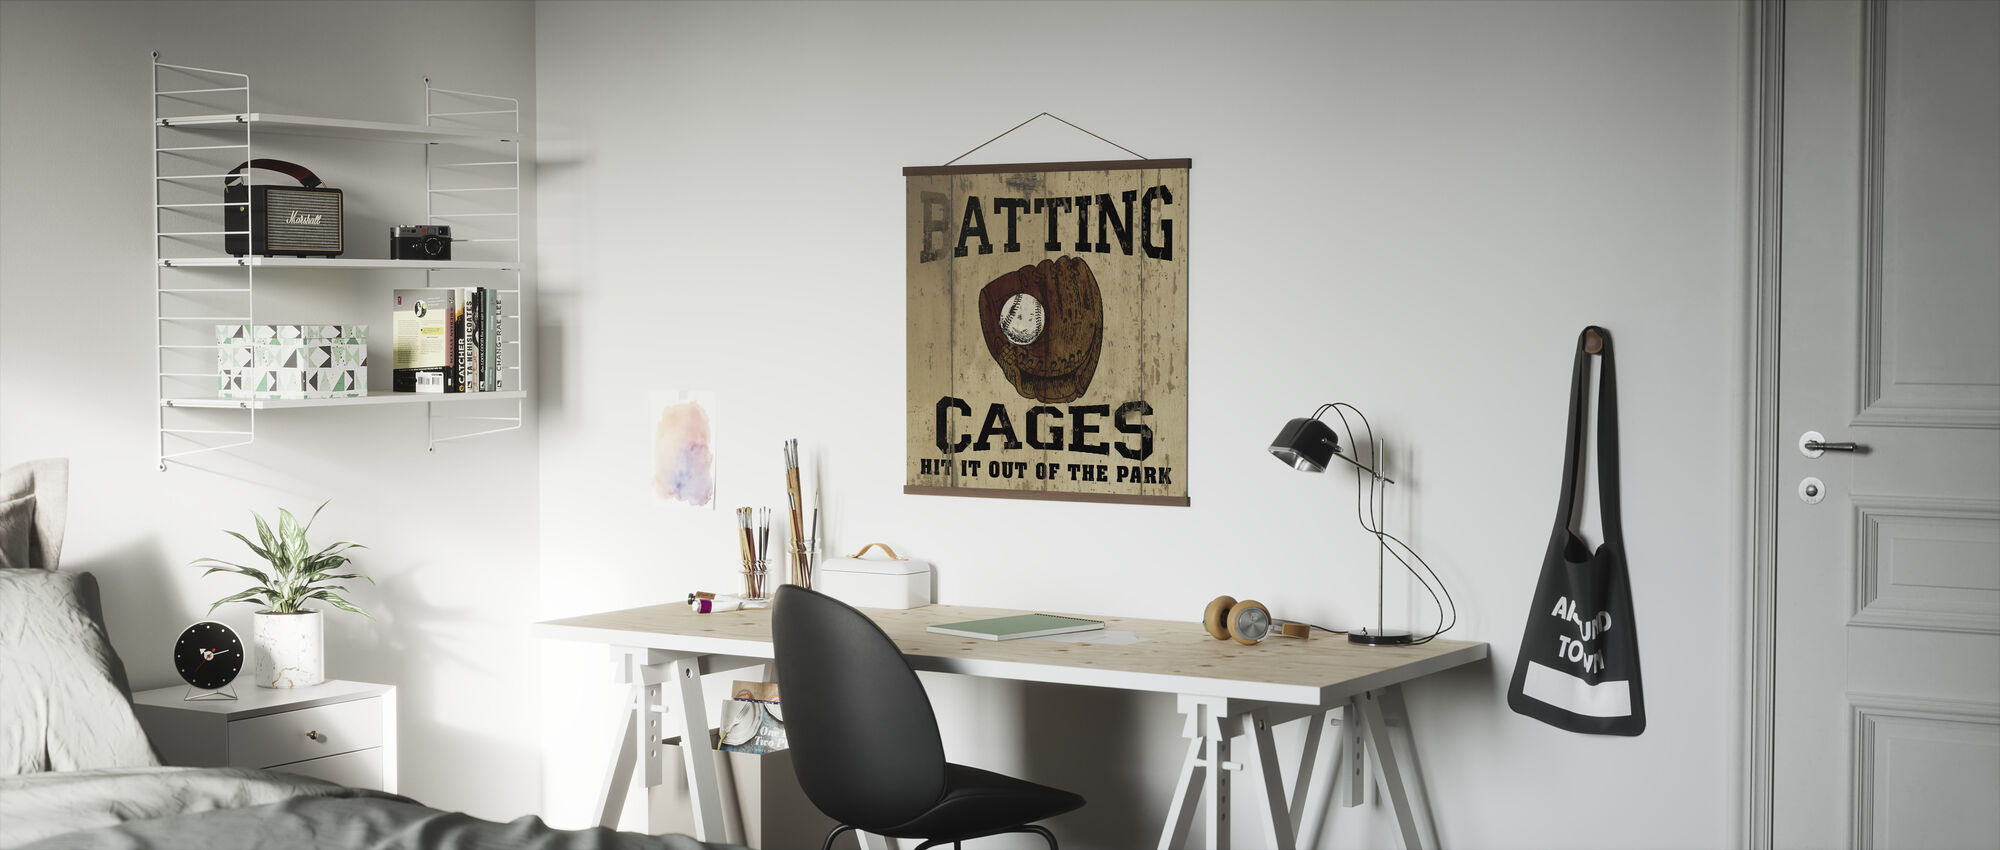 Batting Cages - Poster - Office